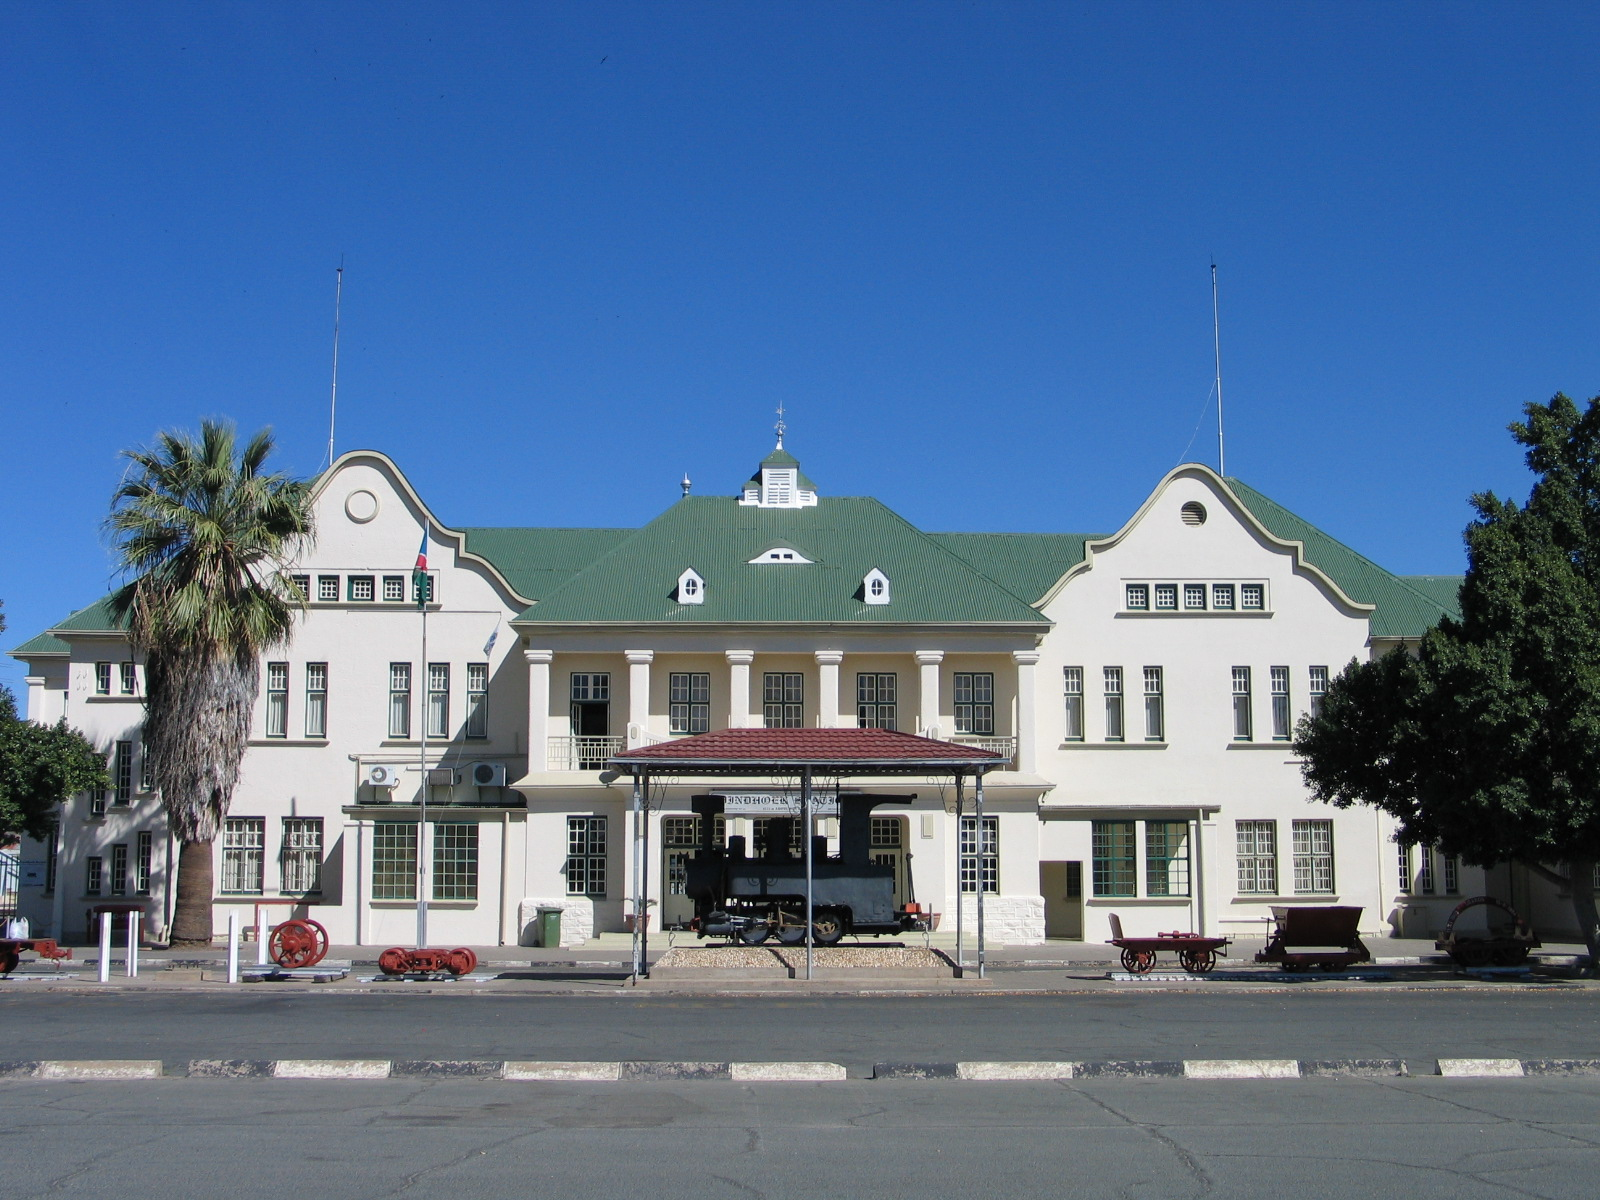 Hist. Bahnhof / Hist. Train Station - Attractions/Entertainment - Bahnhof St, Windhoek, Khomas, Namibia